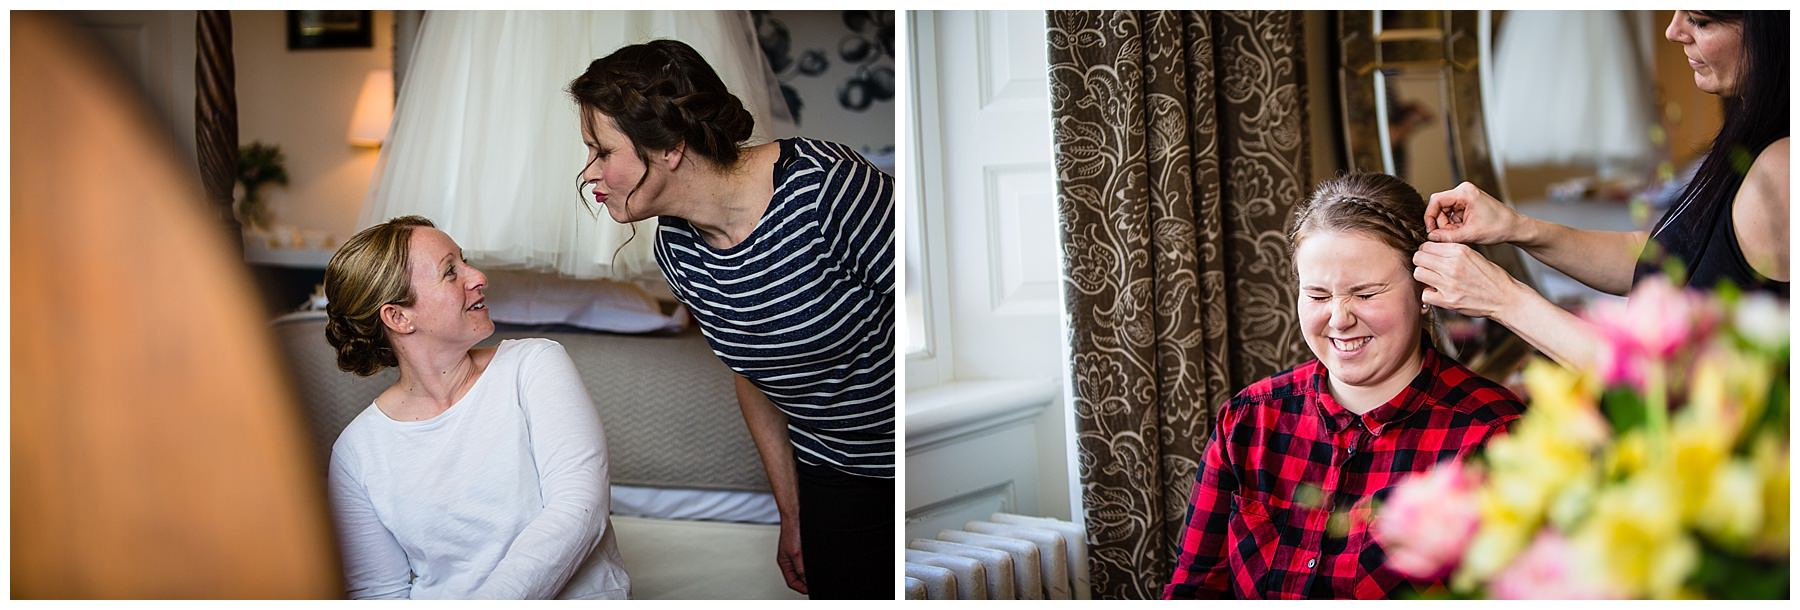 bridemaid going to playfully kiss the bride and another bridesmaid giggling while having hair adjusted - wedding photographer shropshire